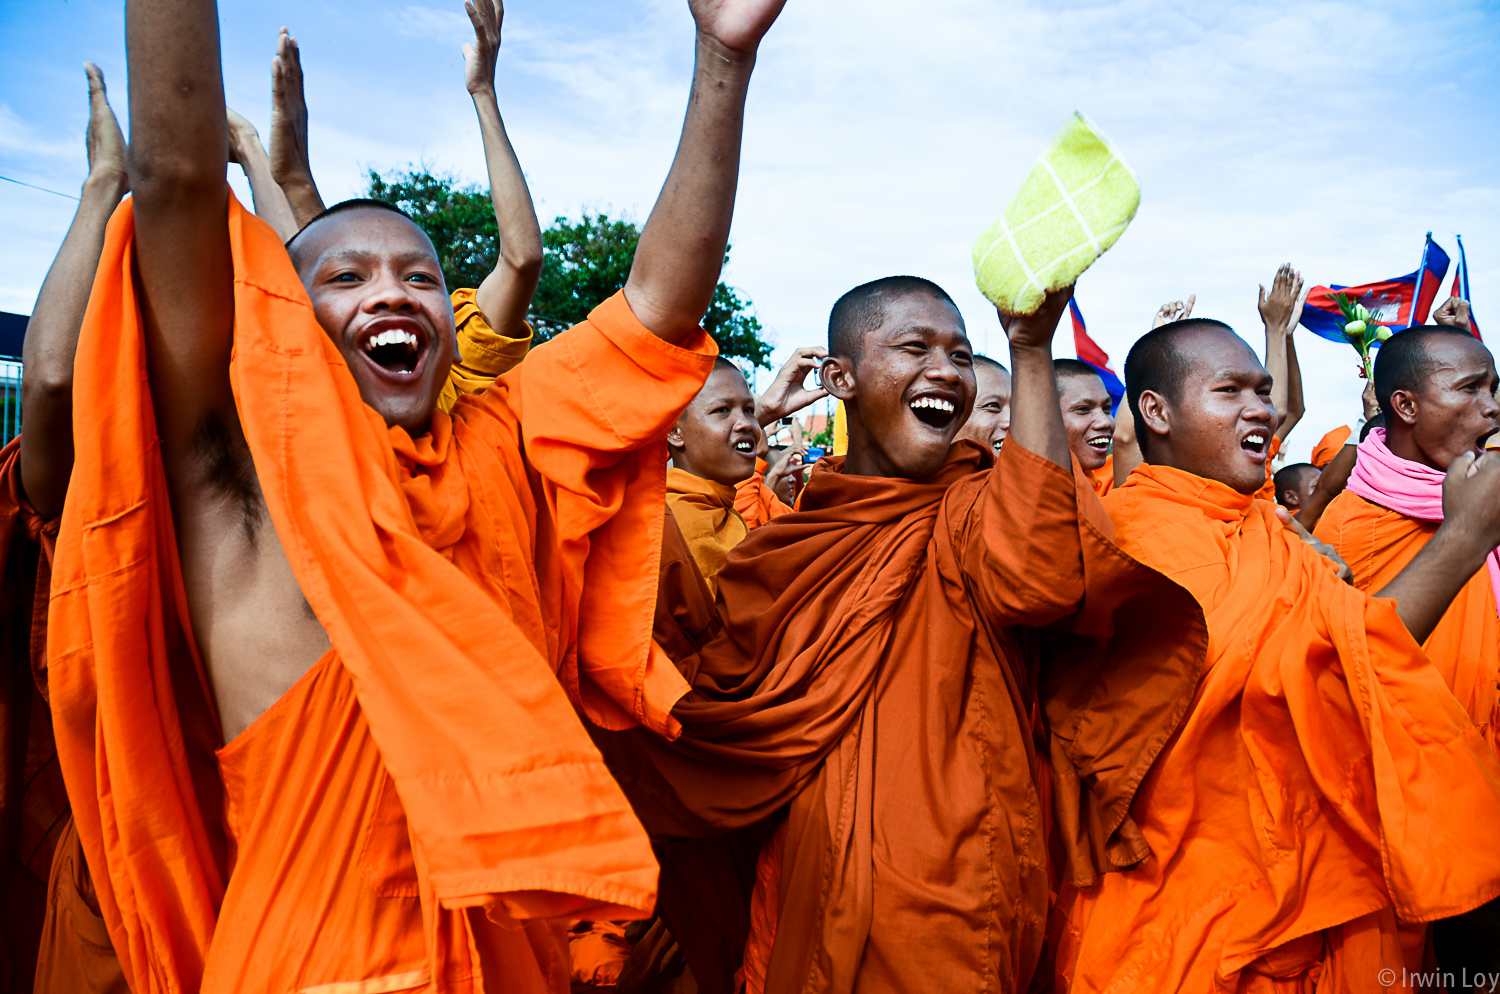 Monks celebrate when an opposition party member announces the results of negotiations with the ruling party, during an opposition-led protest September 16, 2013.